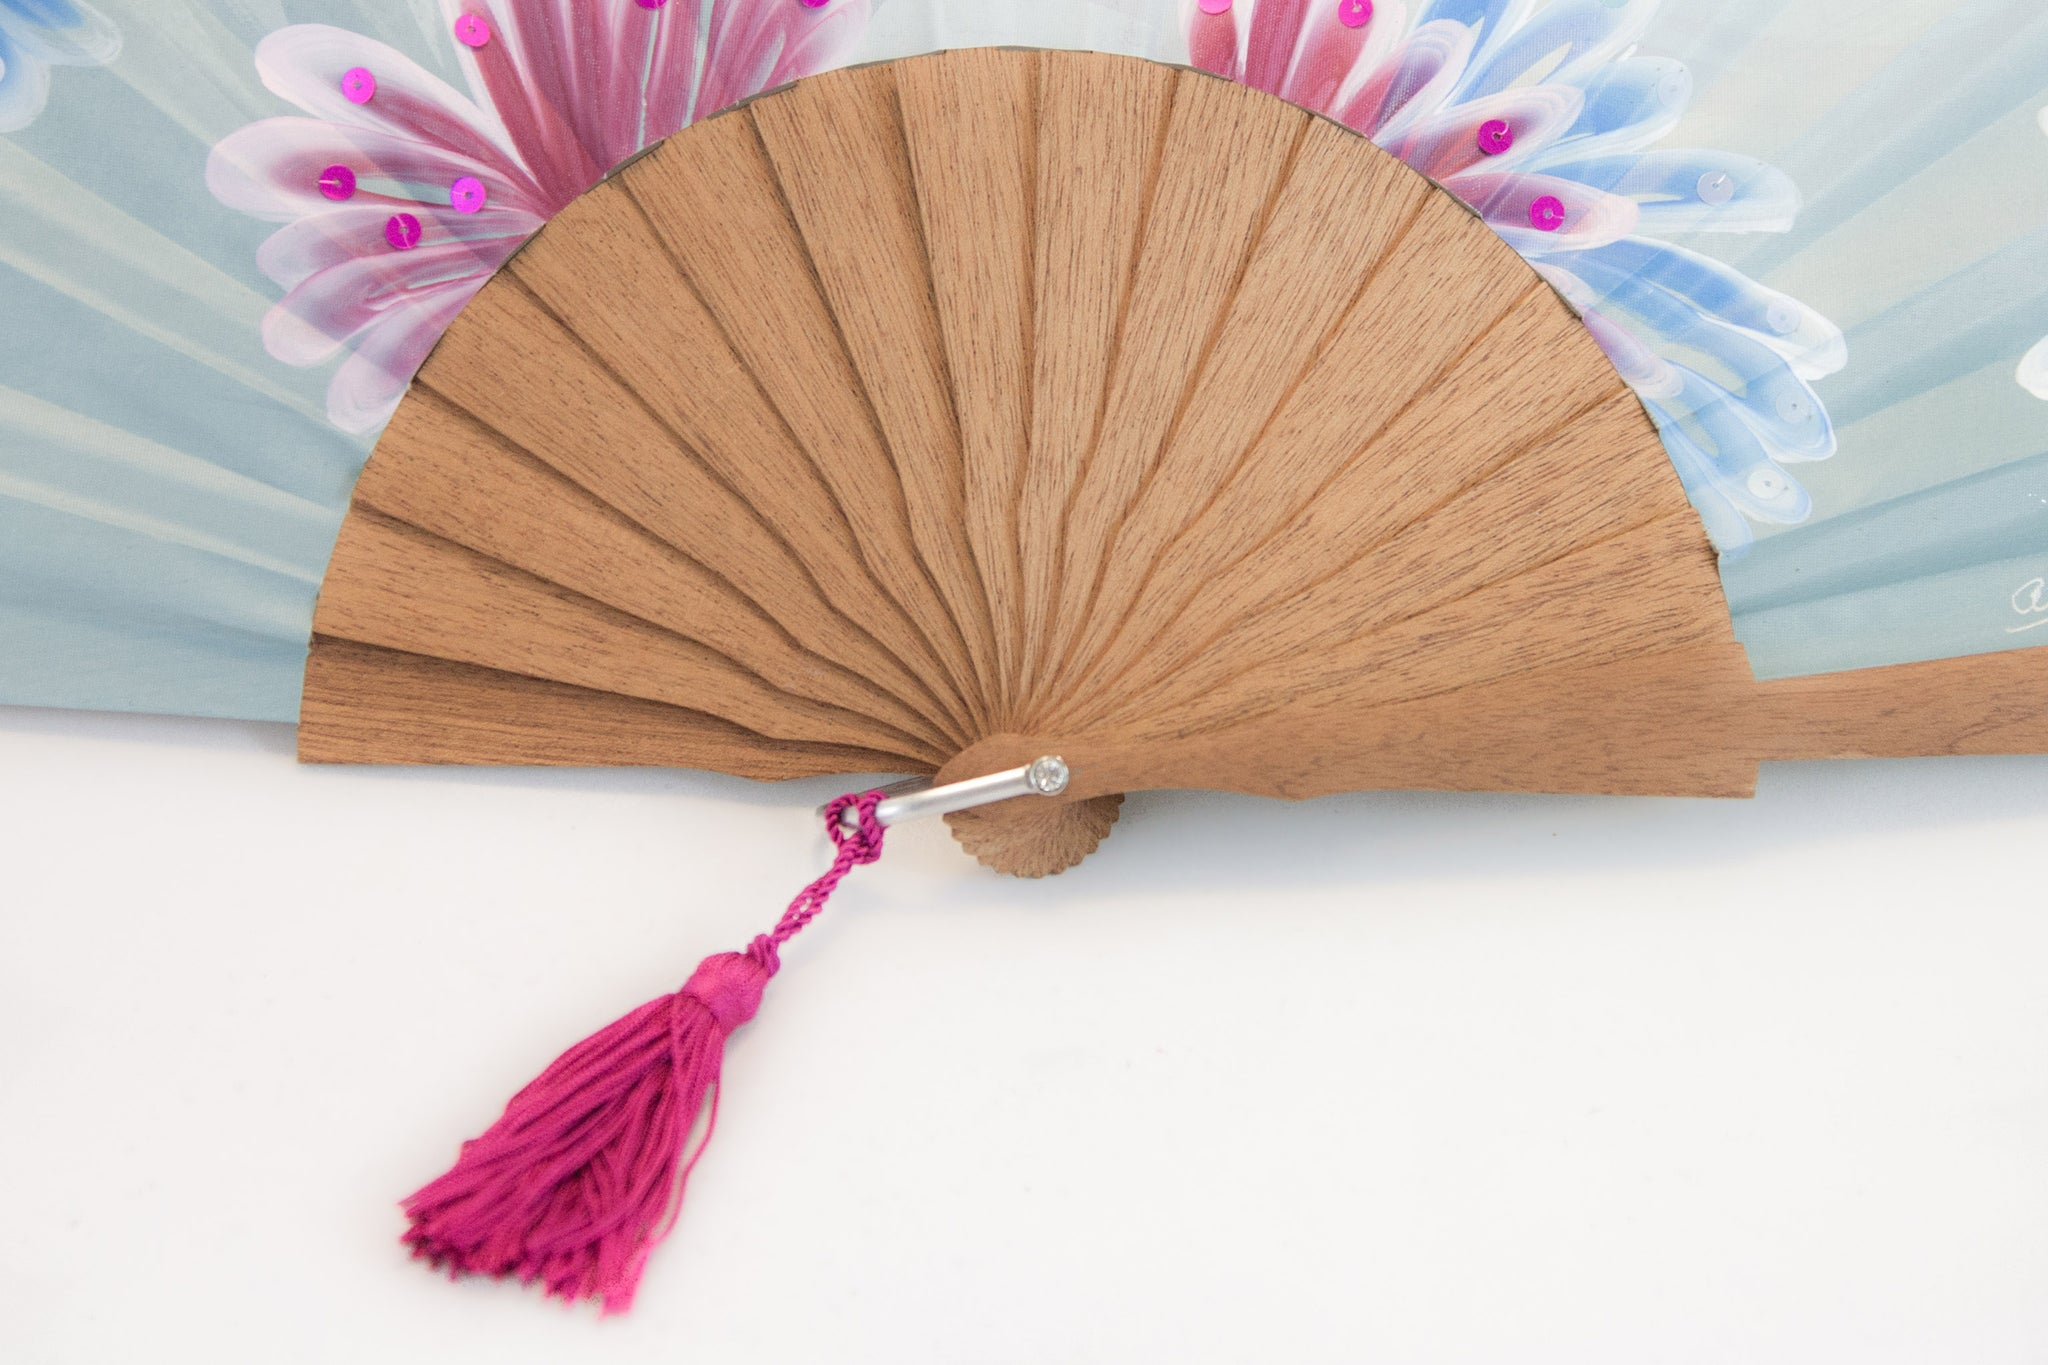 Hawaii - exquisite blue hand painted hand fan wooden handle